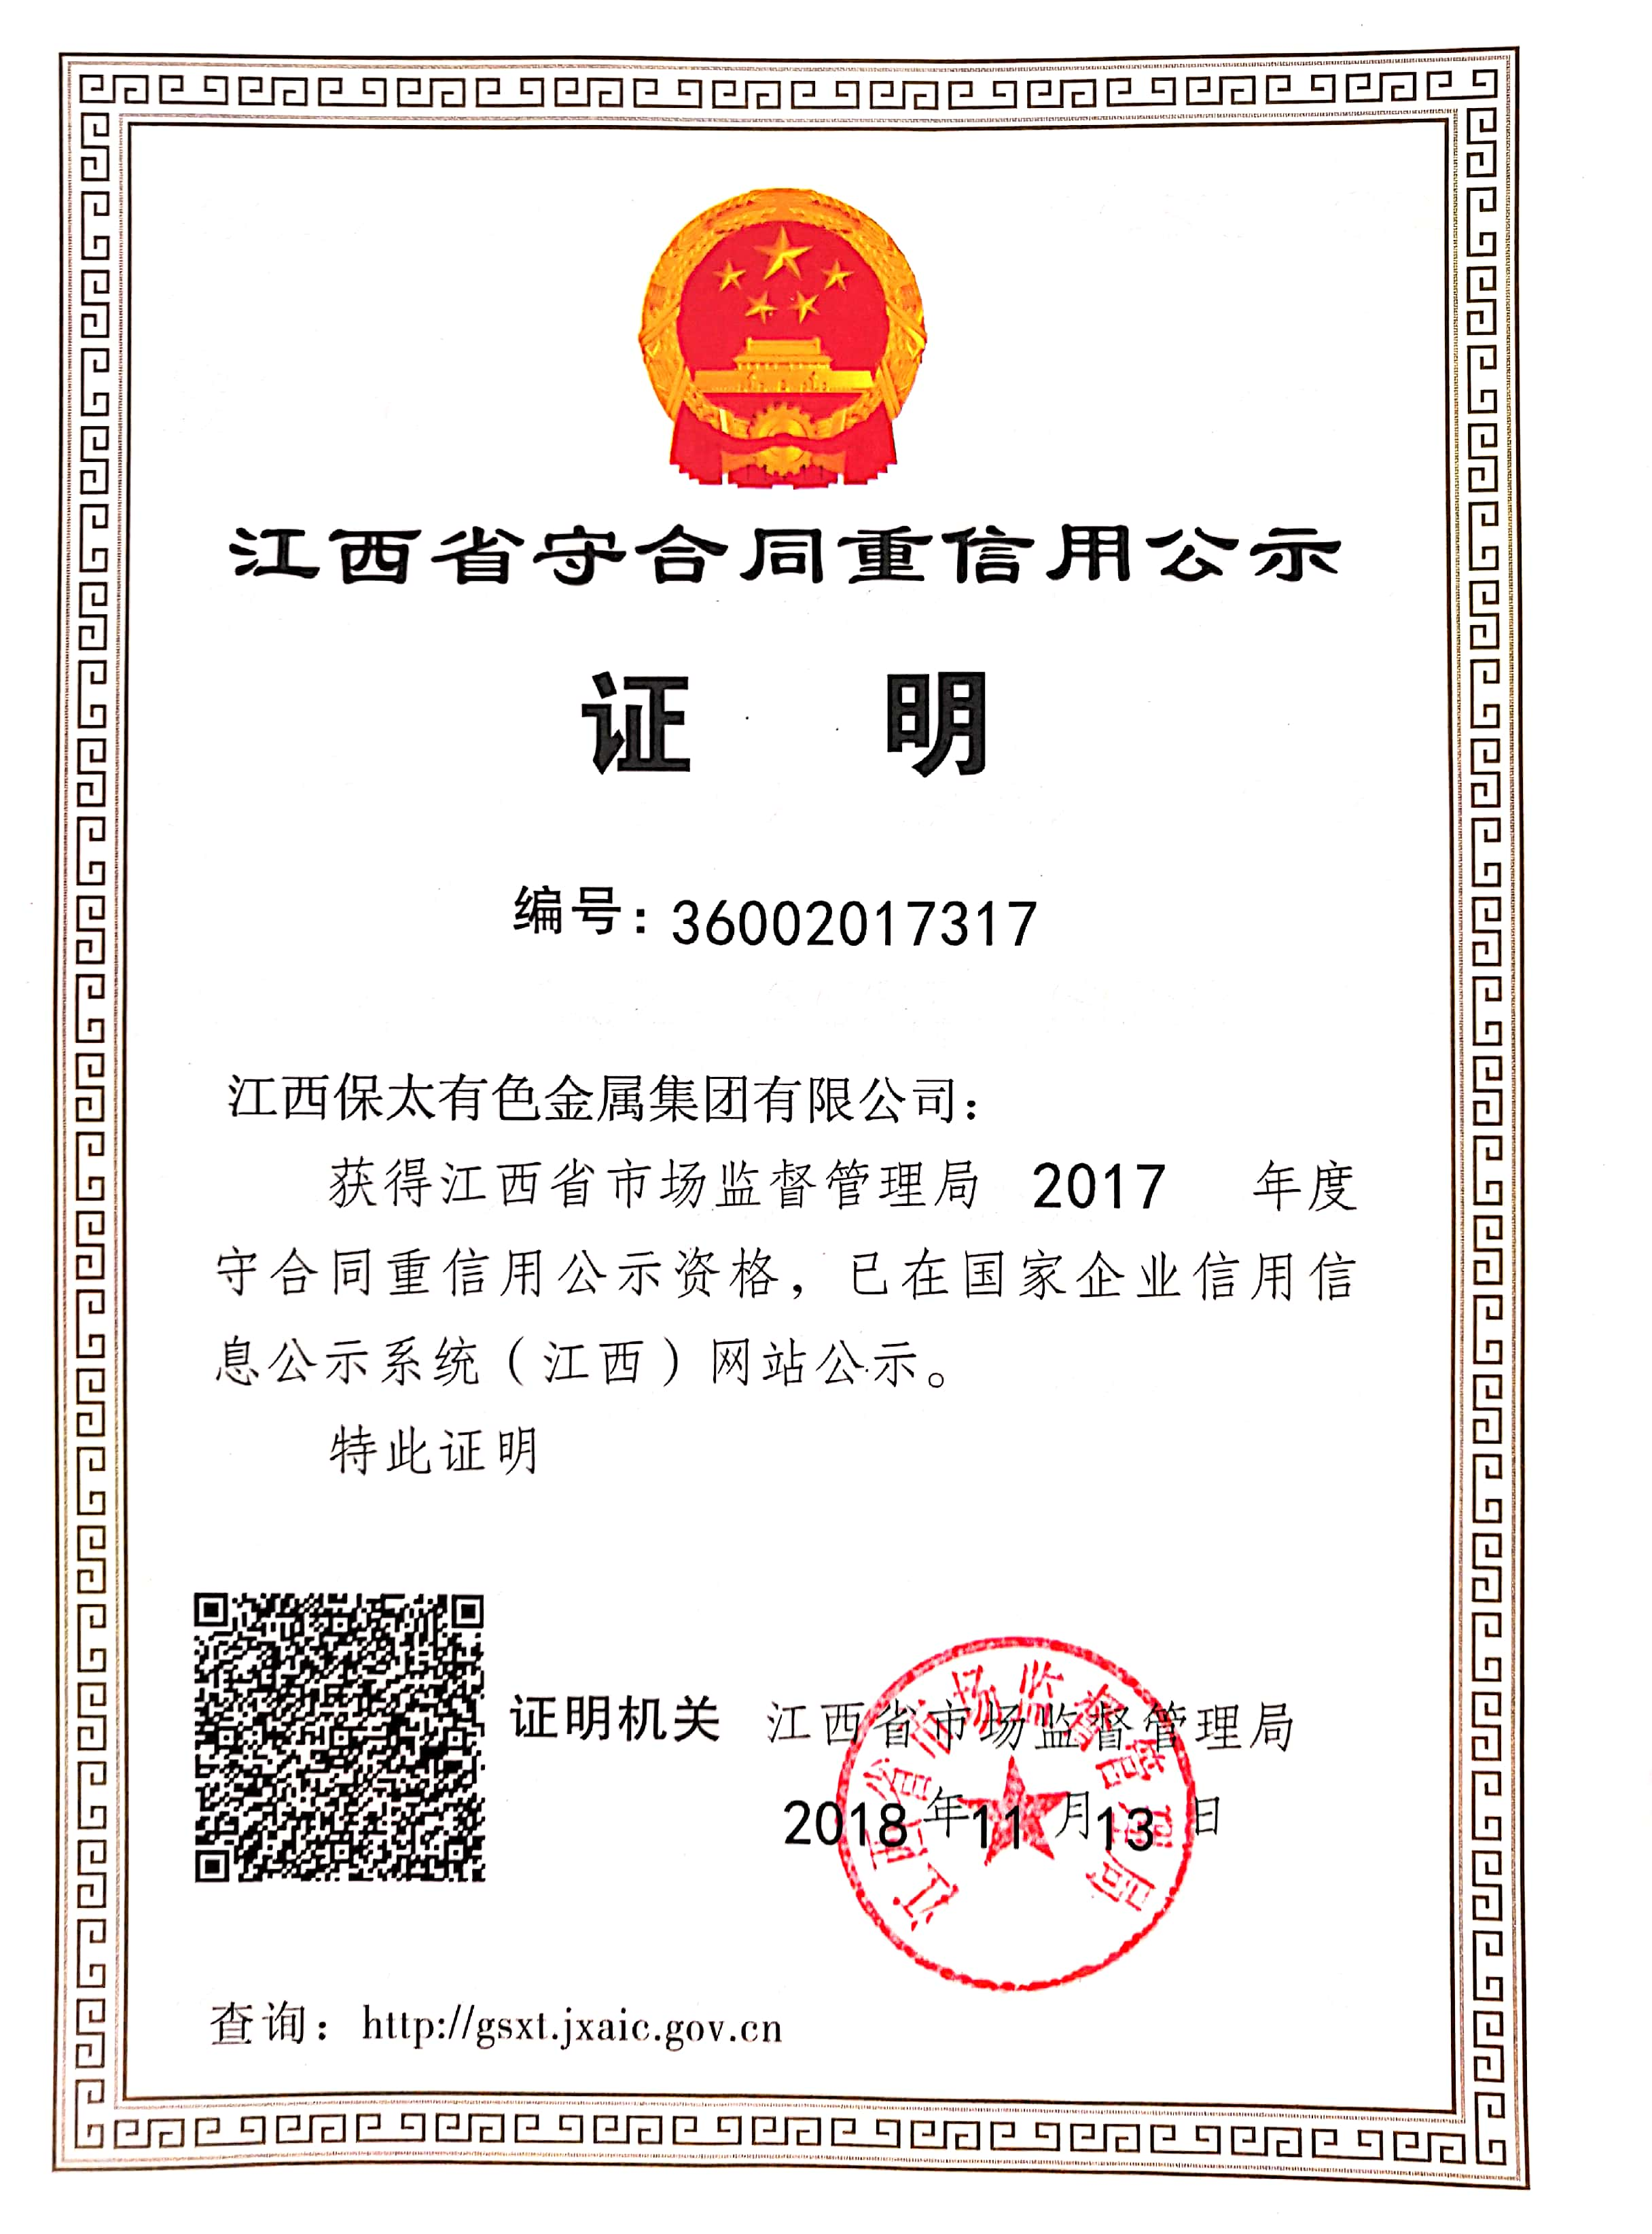 Jiangxi Province 2017 Annual Contract-Respecting Credit Certificate